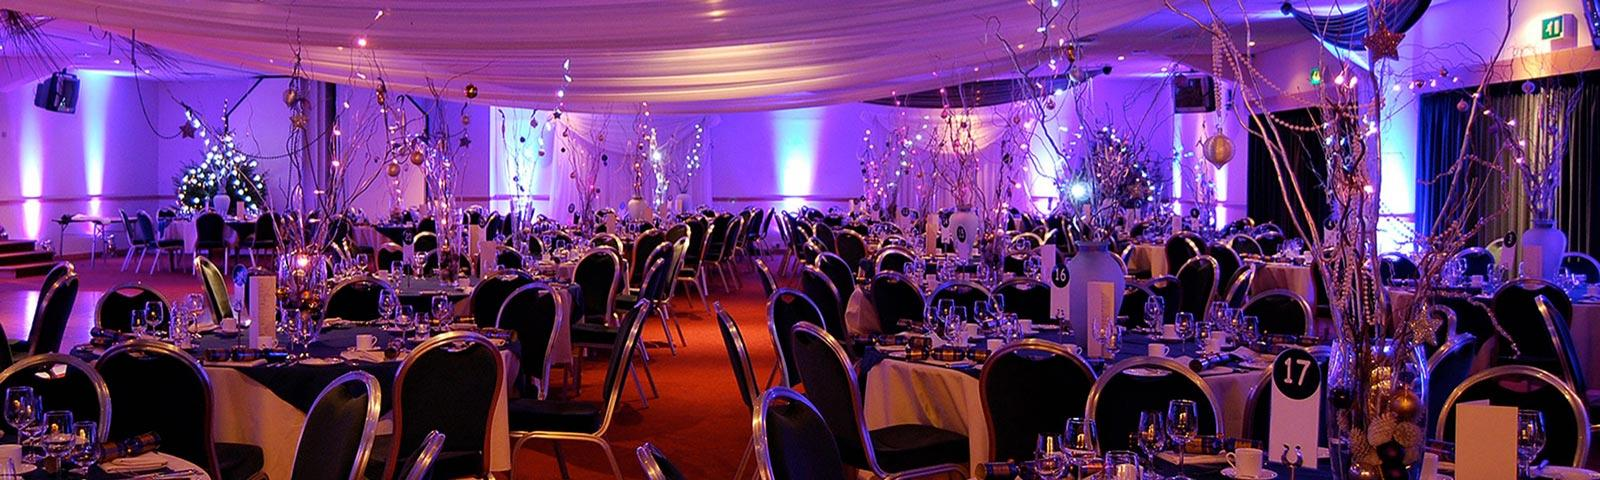 A beautifully decorated party room at Lingfield Park Resort.